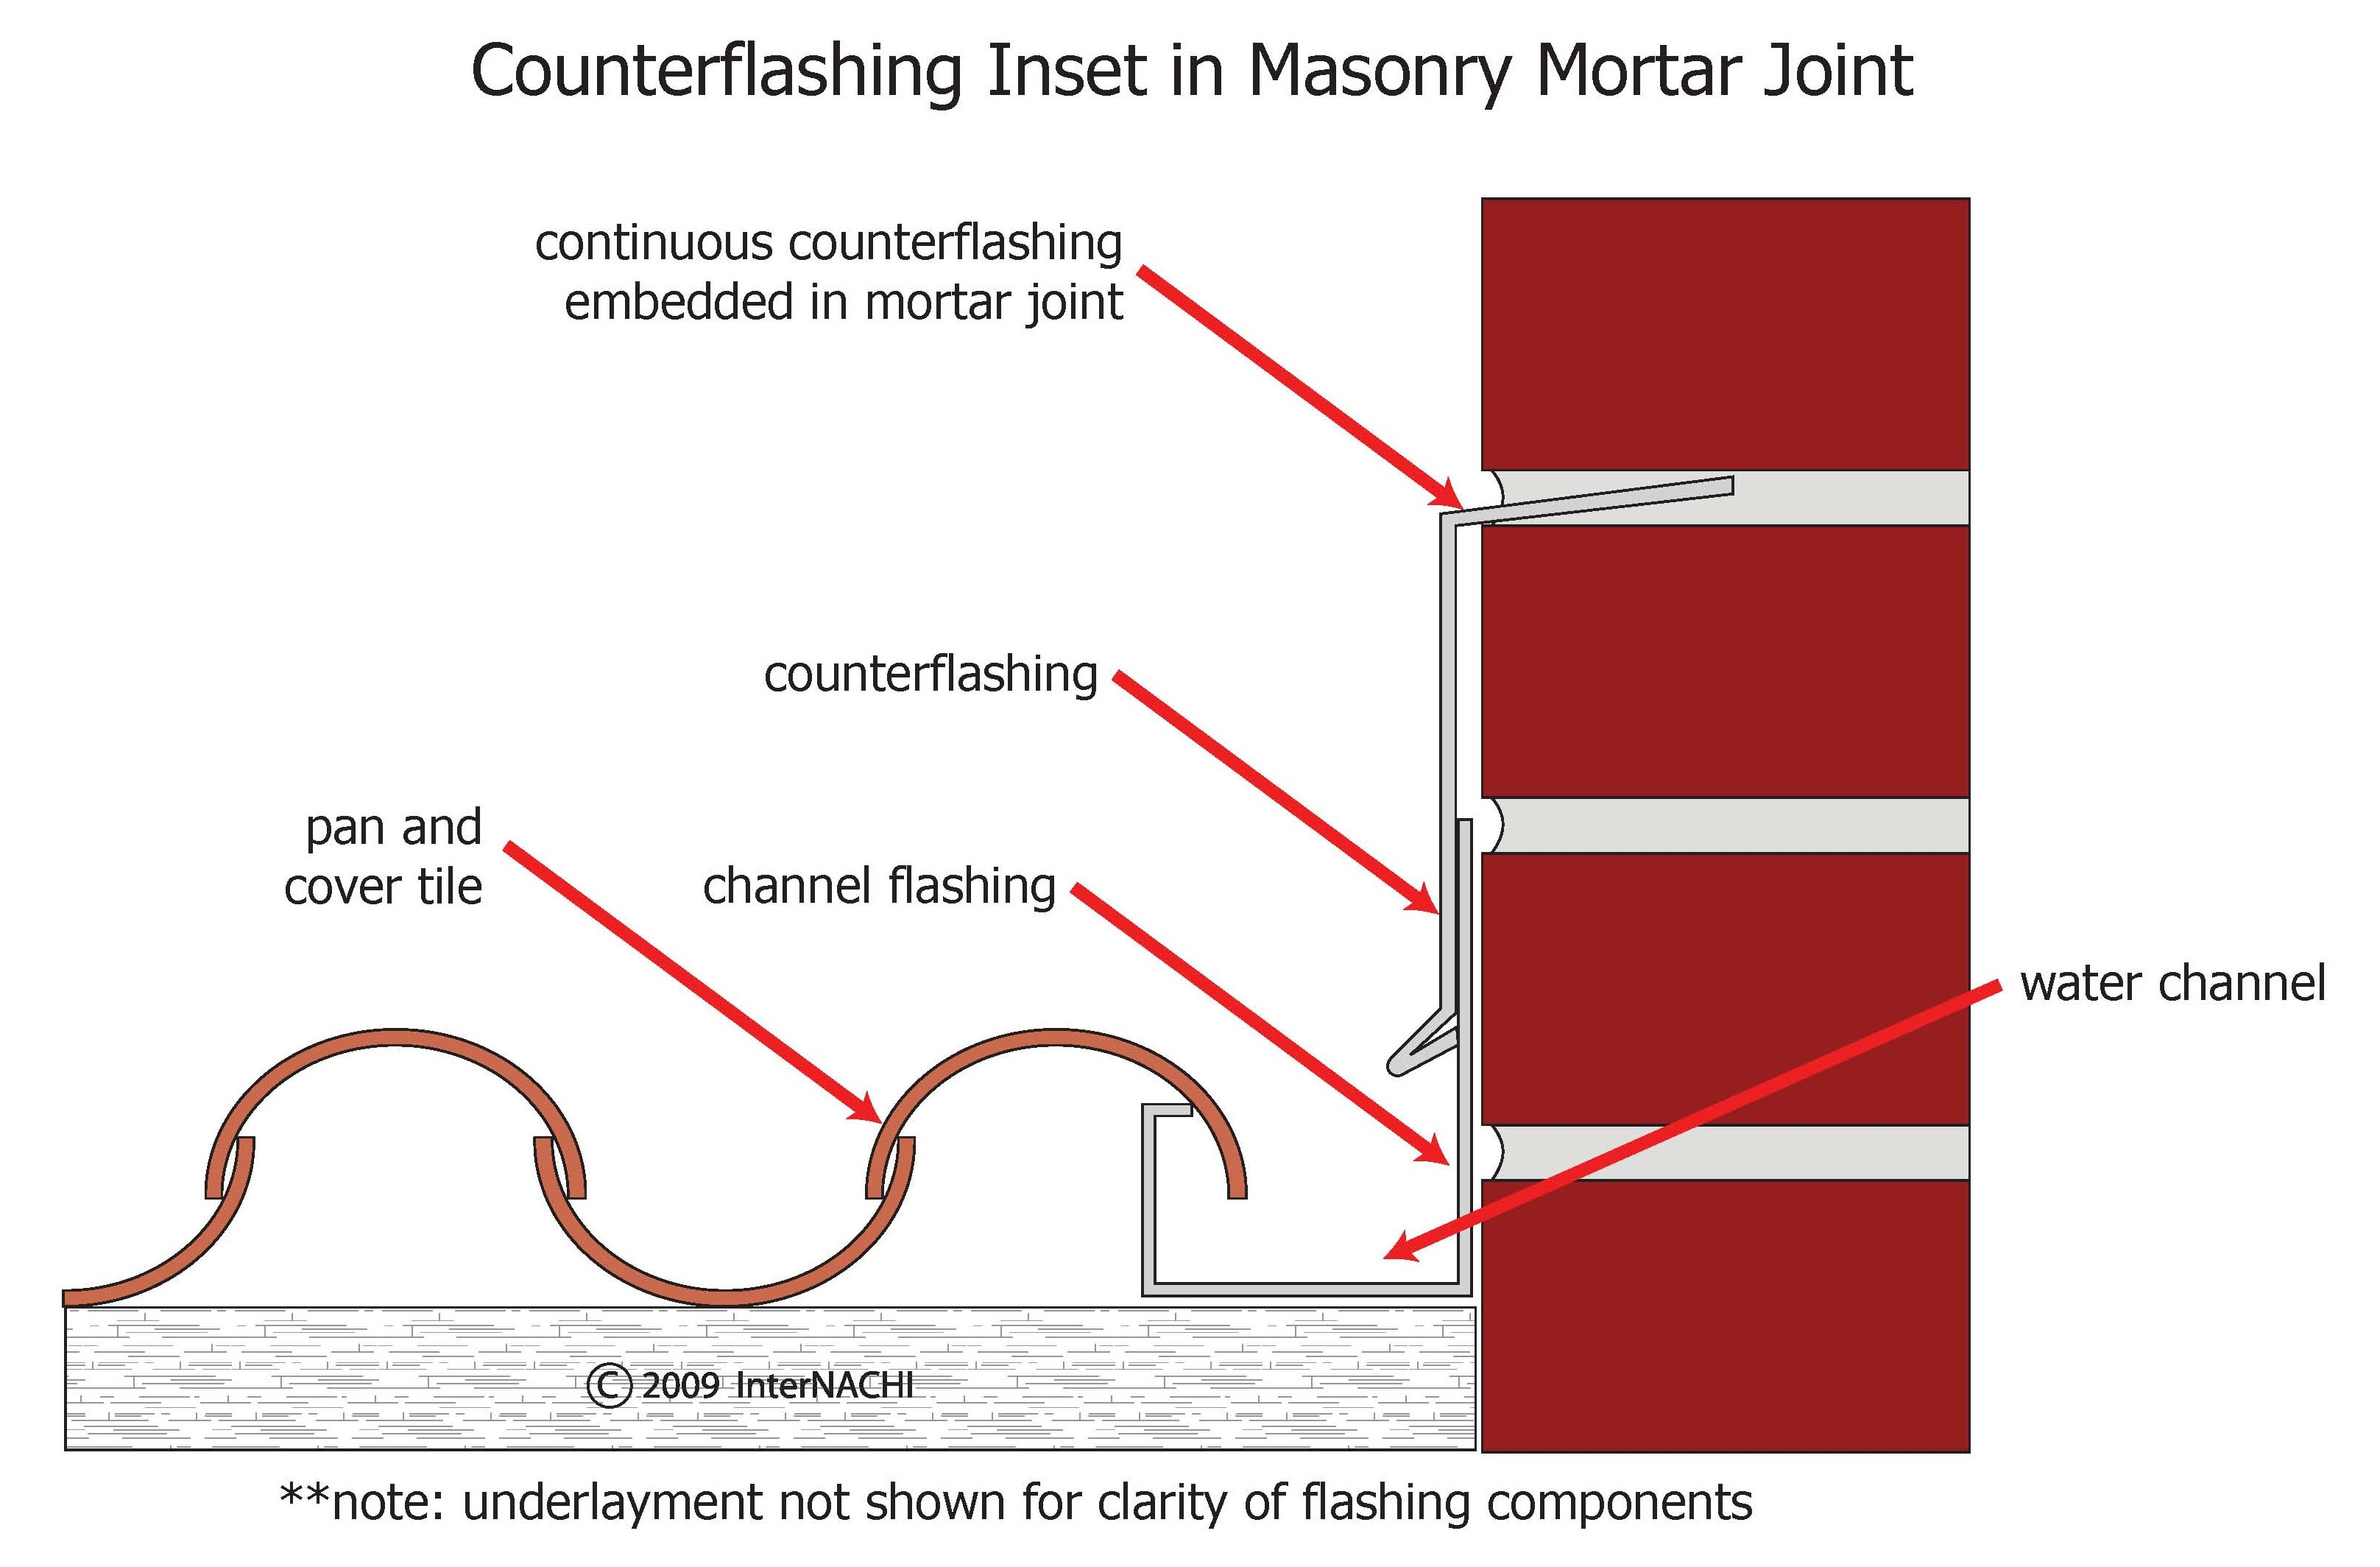 Counterflashing inset in mortar joint.